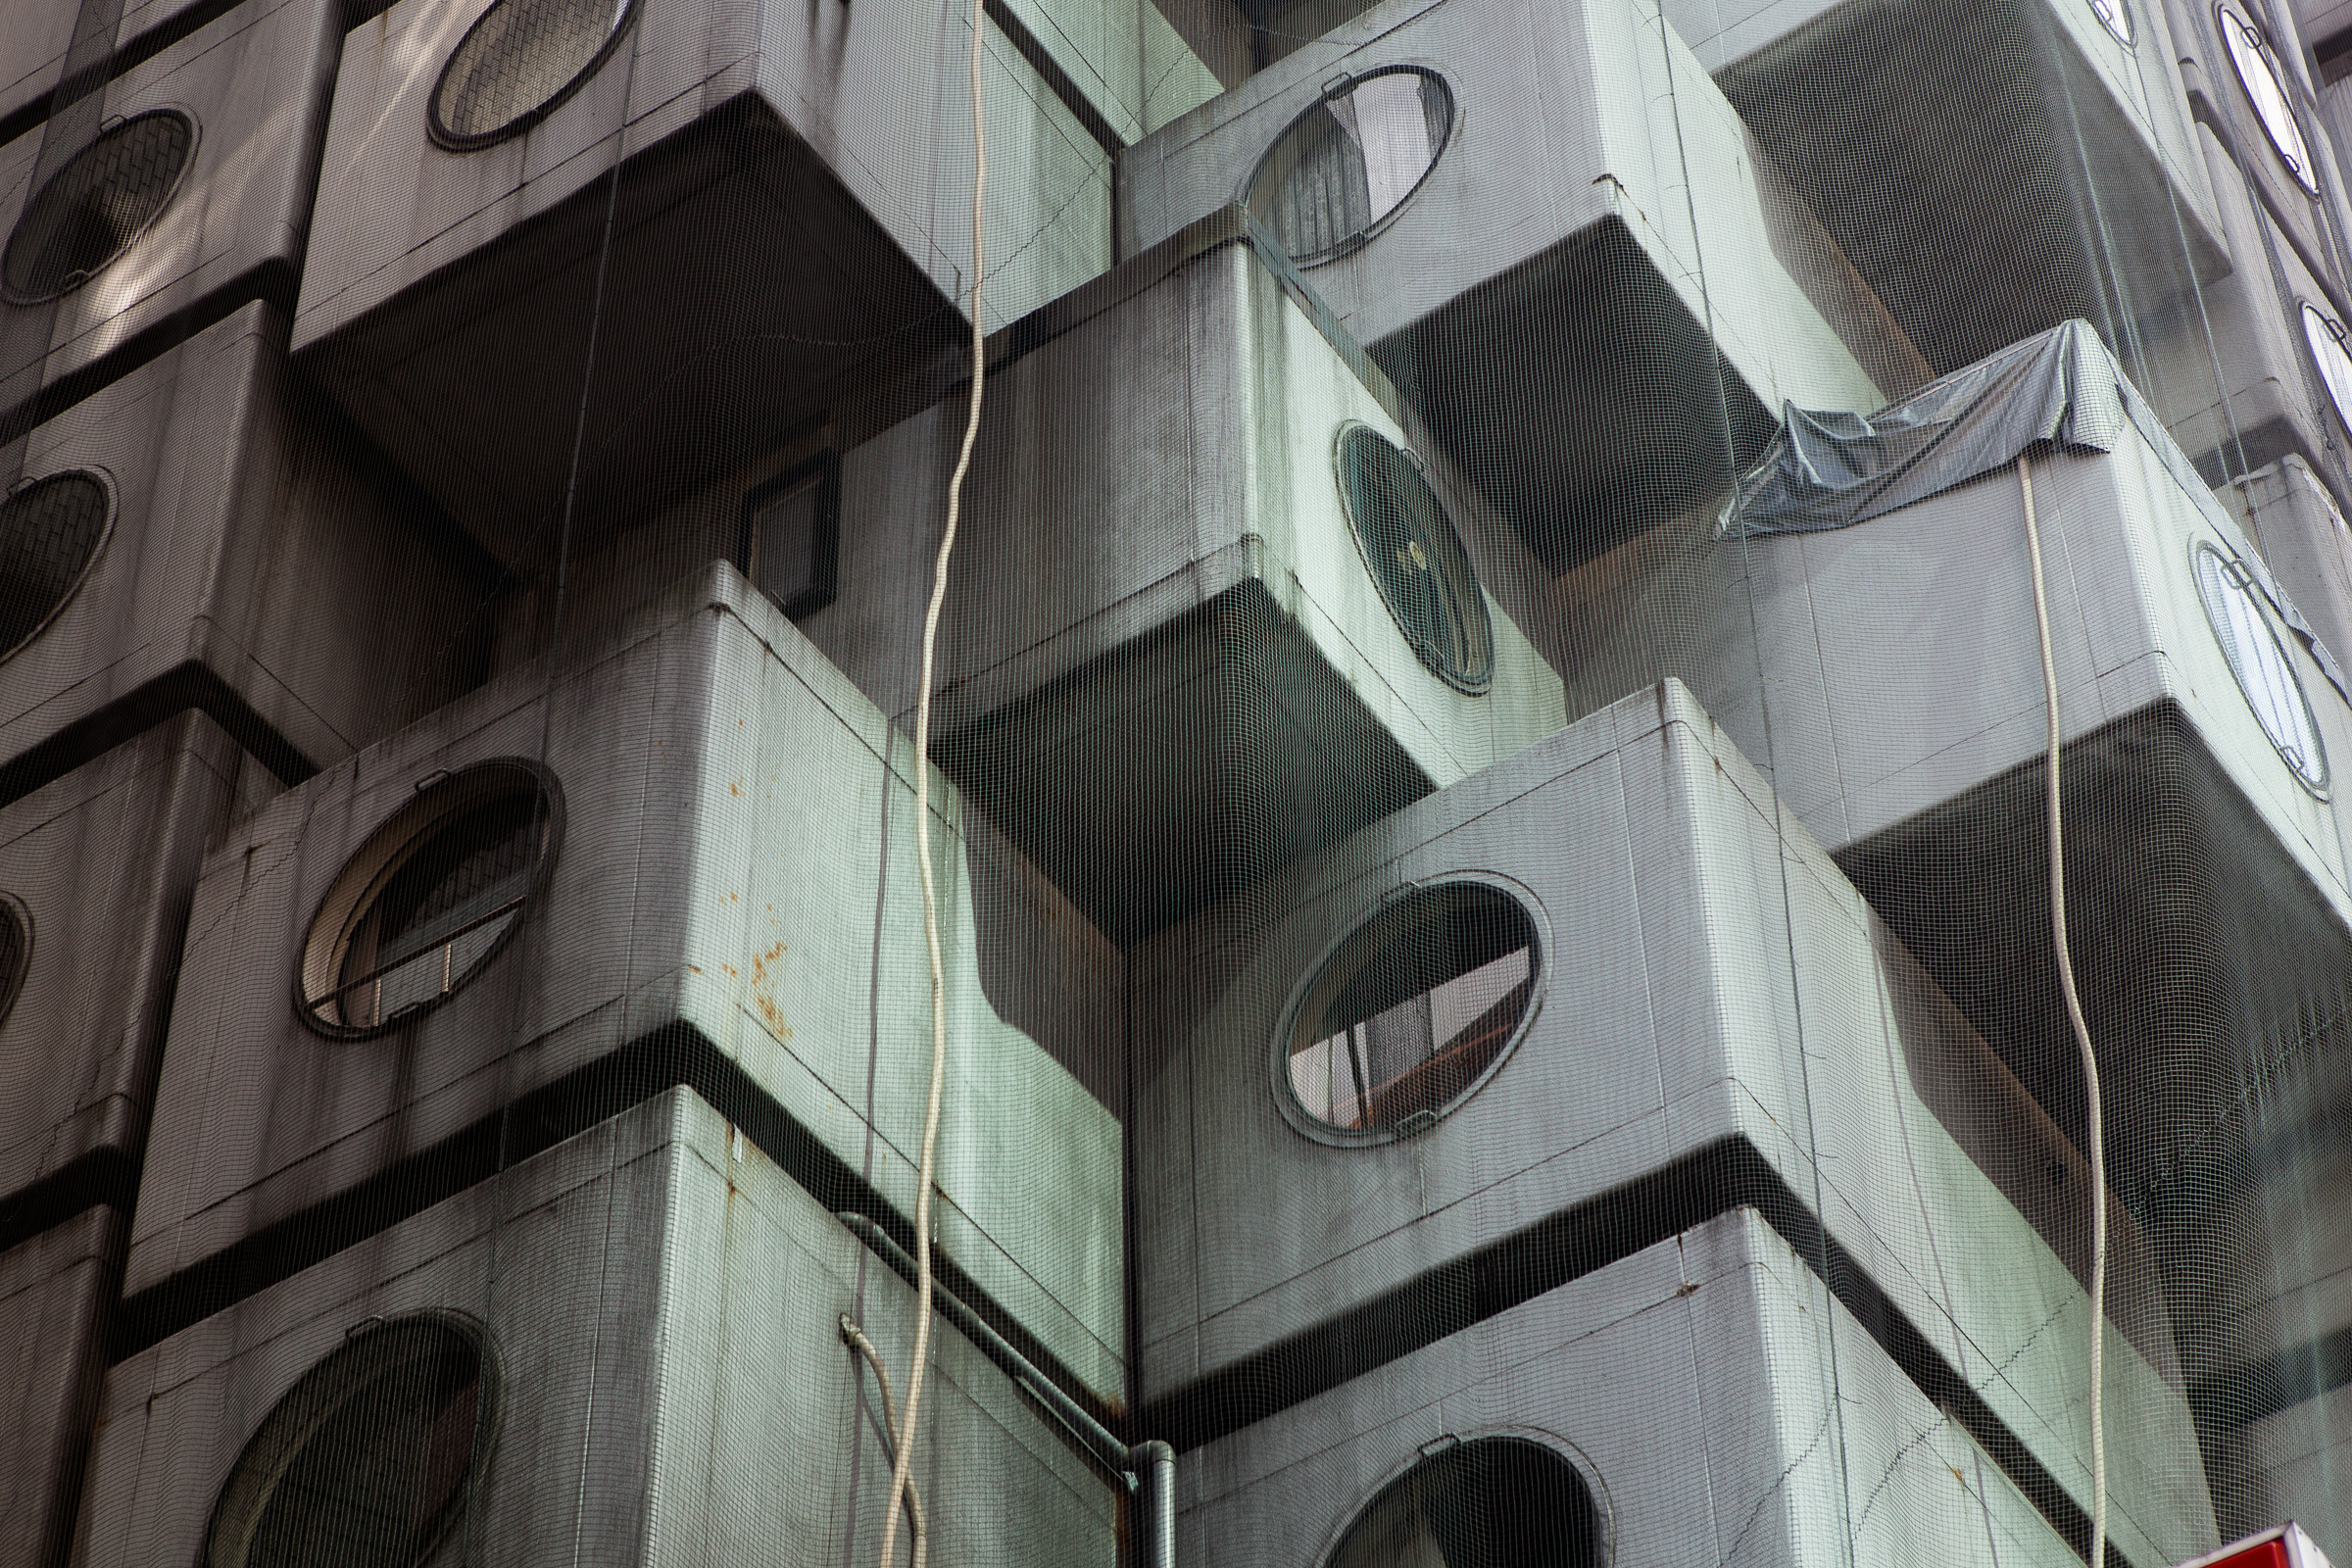 The Nagakin Capsule Tower designed by architect Kisho Kurokawa